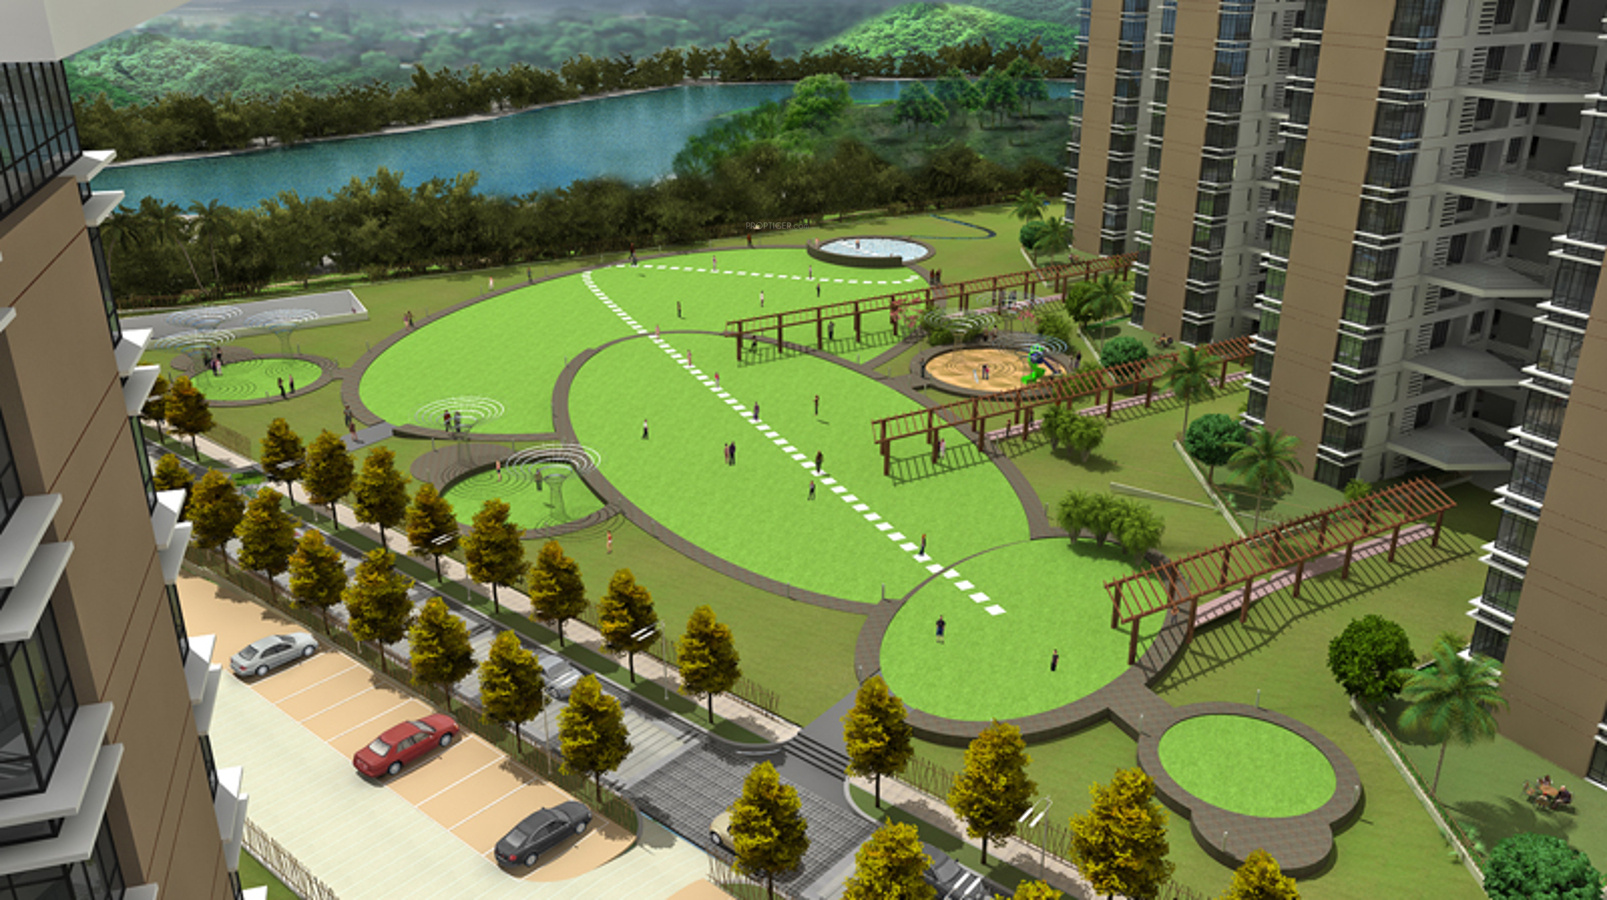 1184 Sq Ft 2 Bhk 2t Apartment For Sale In J K Group Park